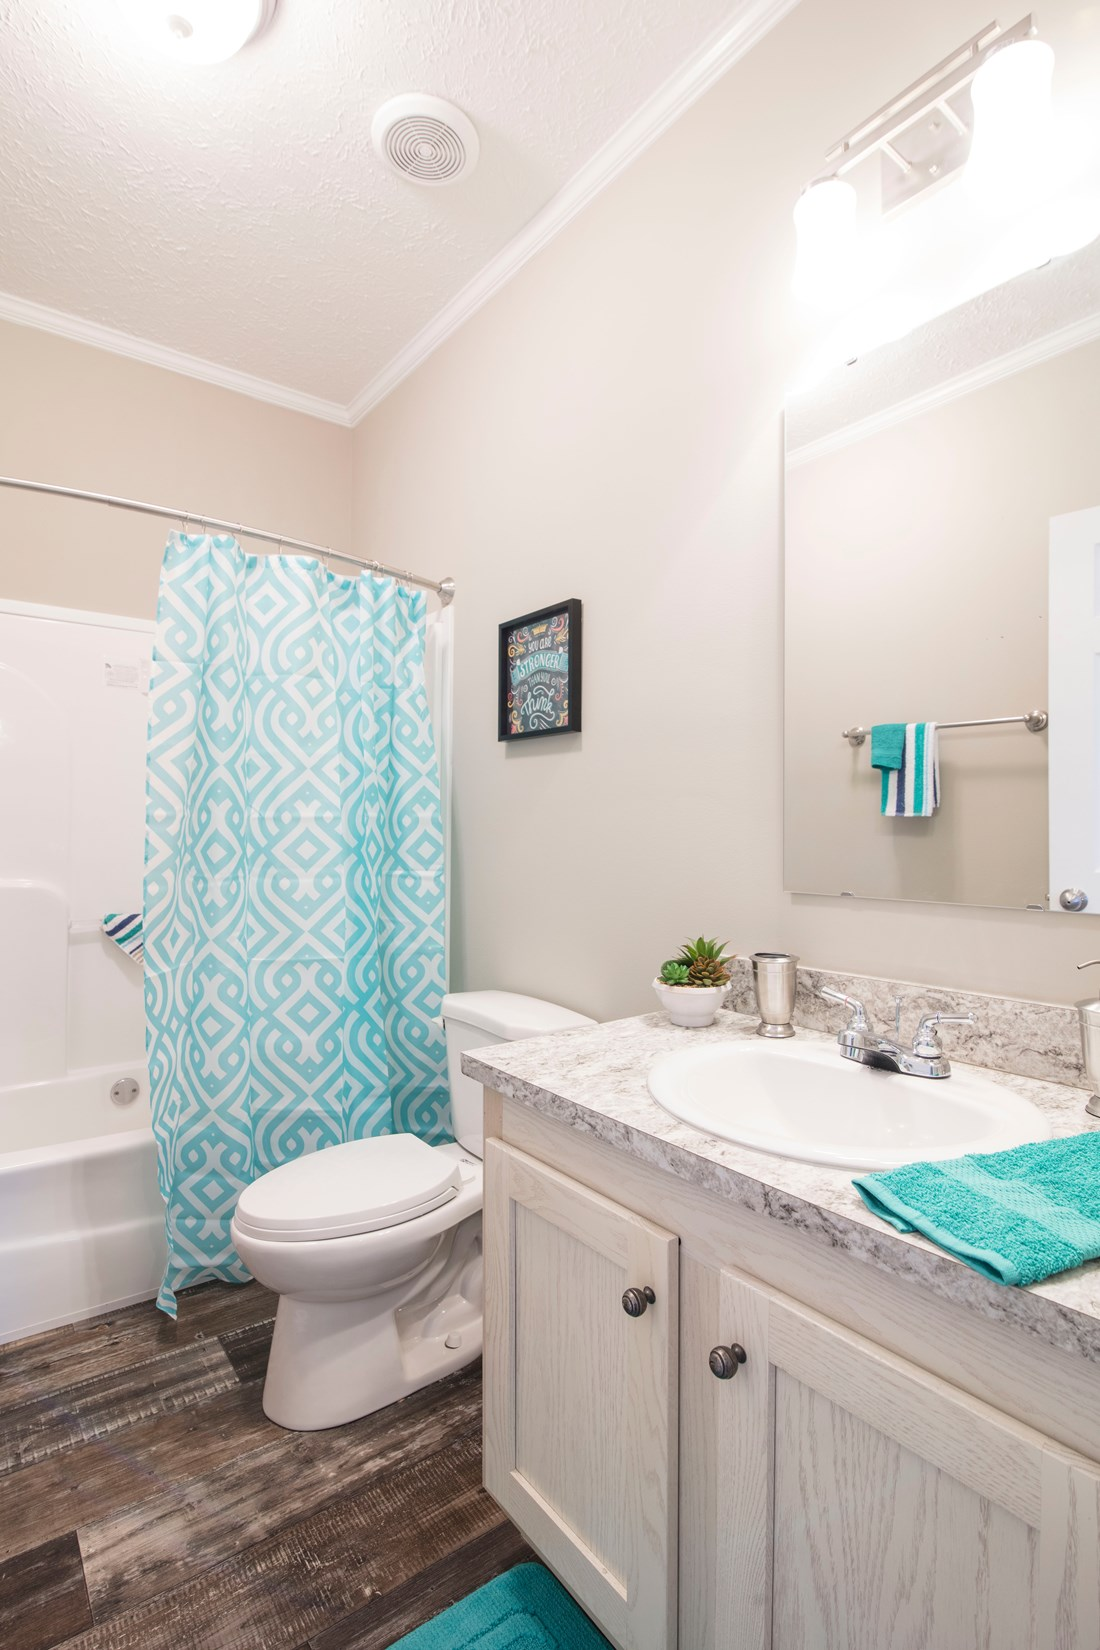 The 3338 HERITAGE Guest Bathroom. This Manufactured Mobile Home features 4 bedrooms and 2 baths.